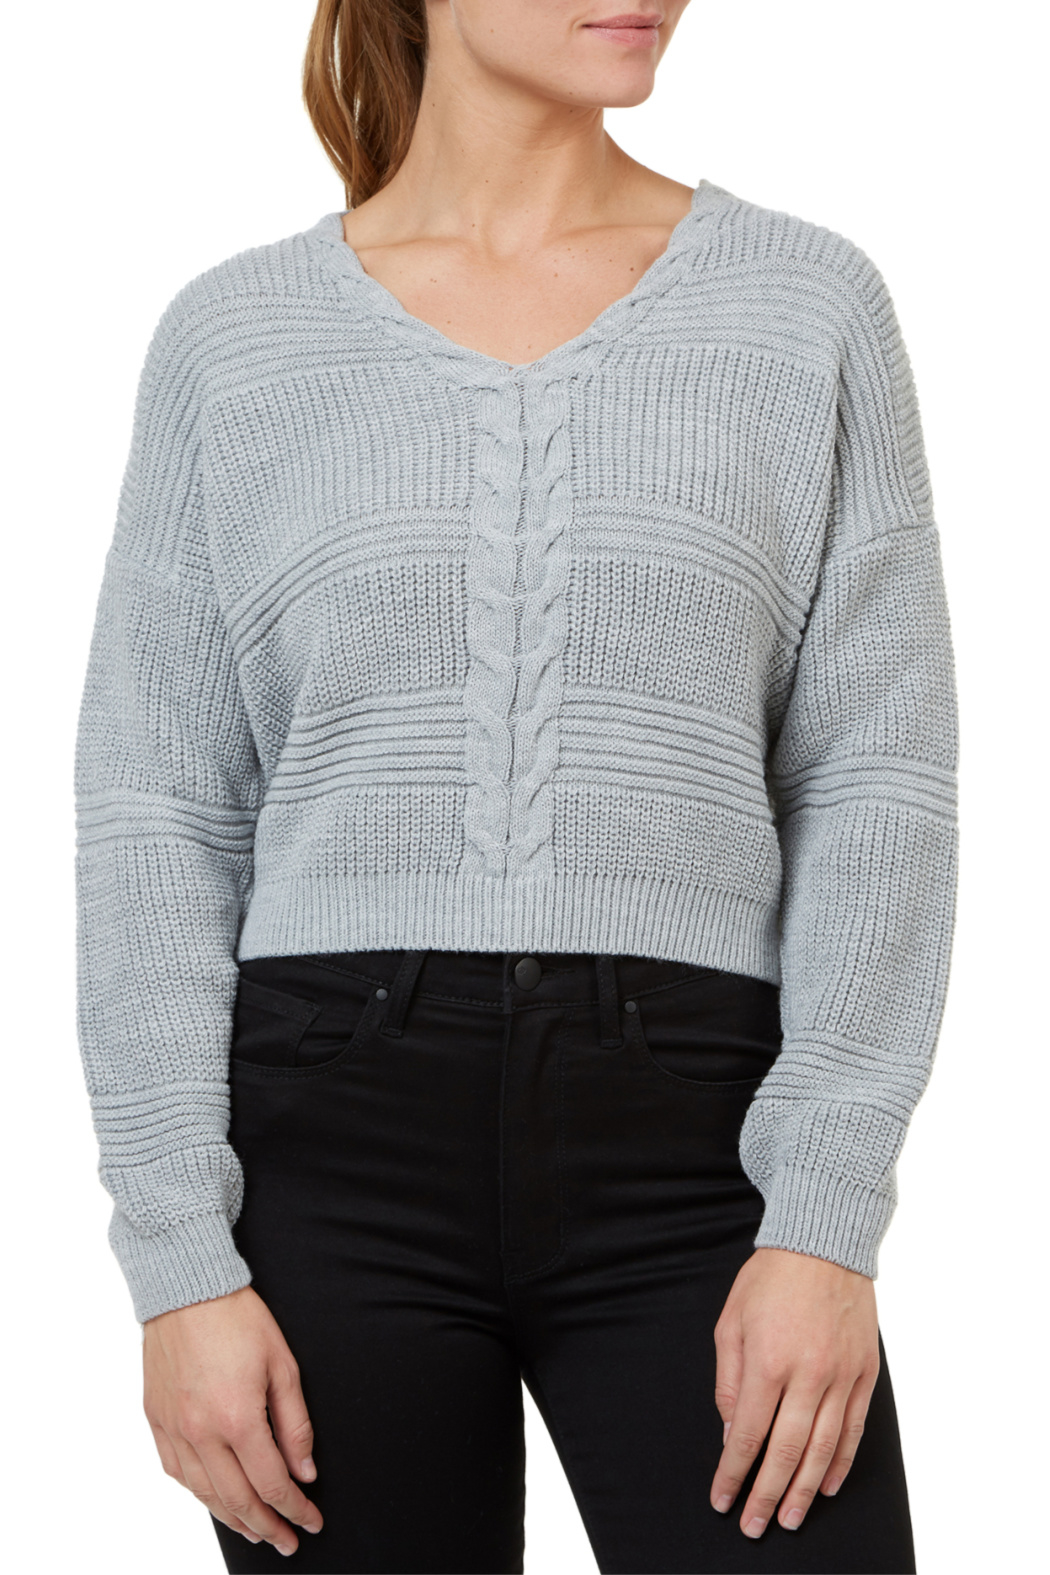 Numero Denim Lace Up Back Crop Sweater - Main Image